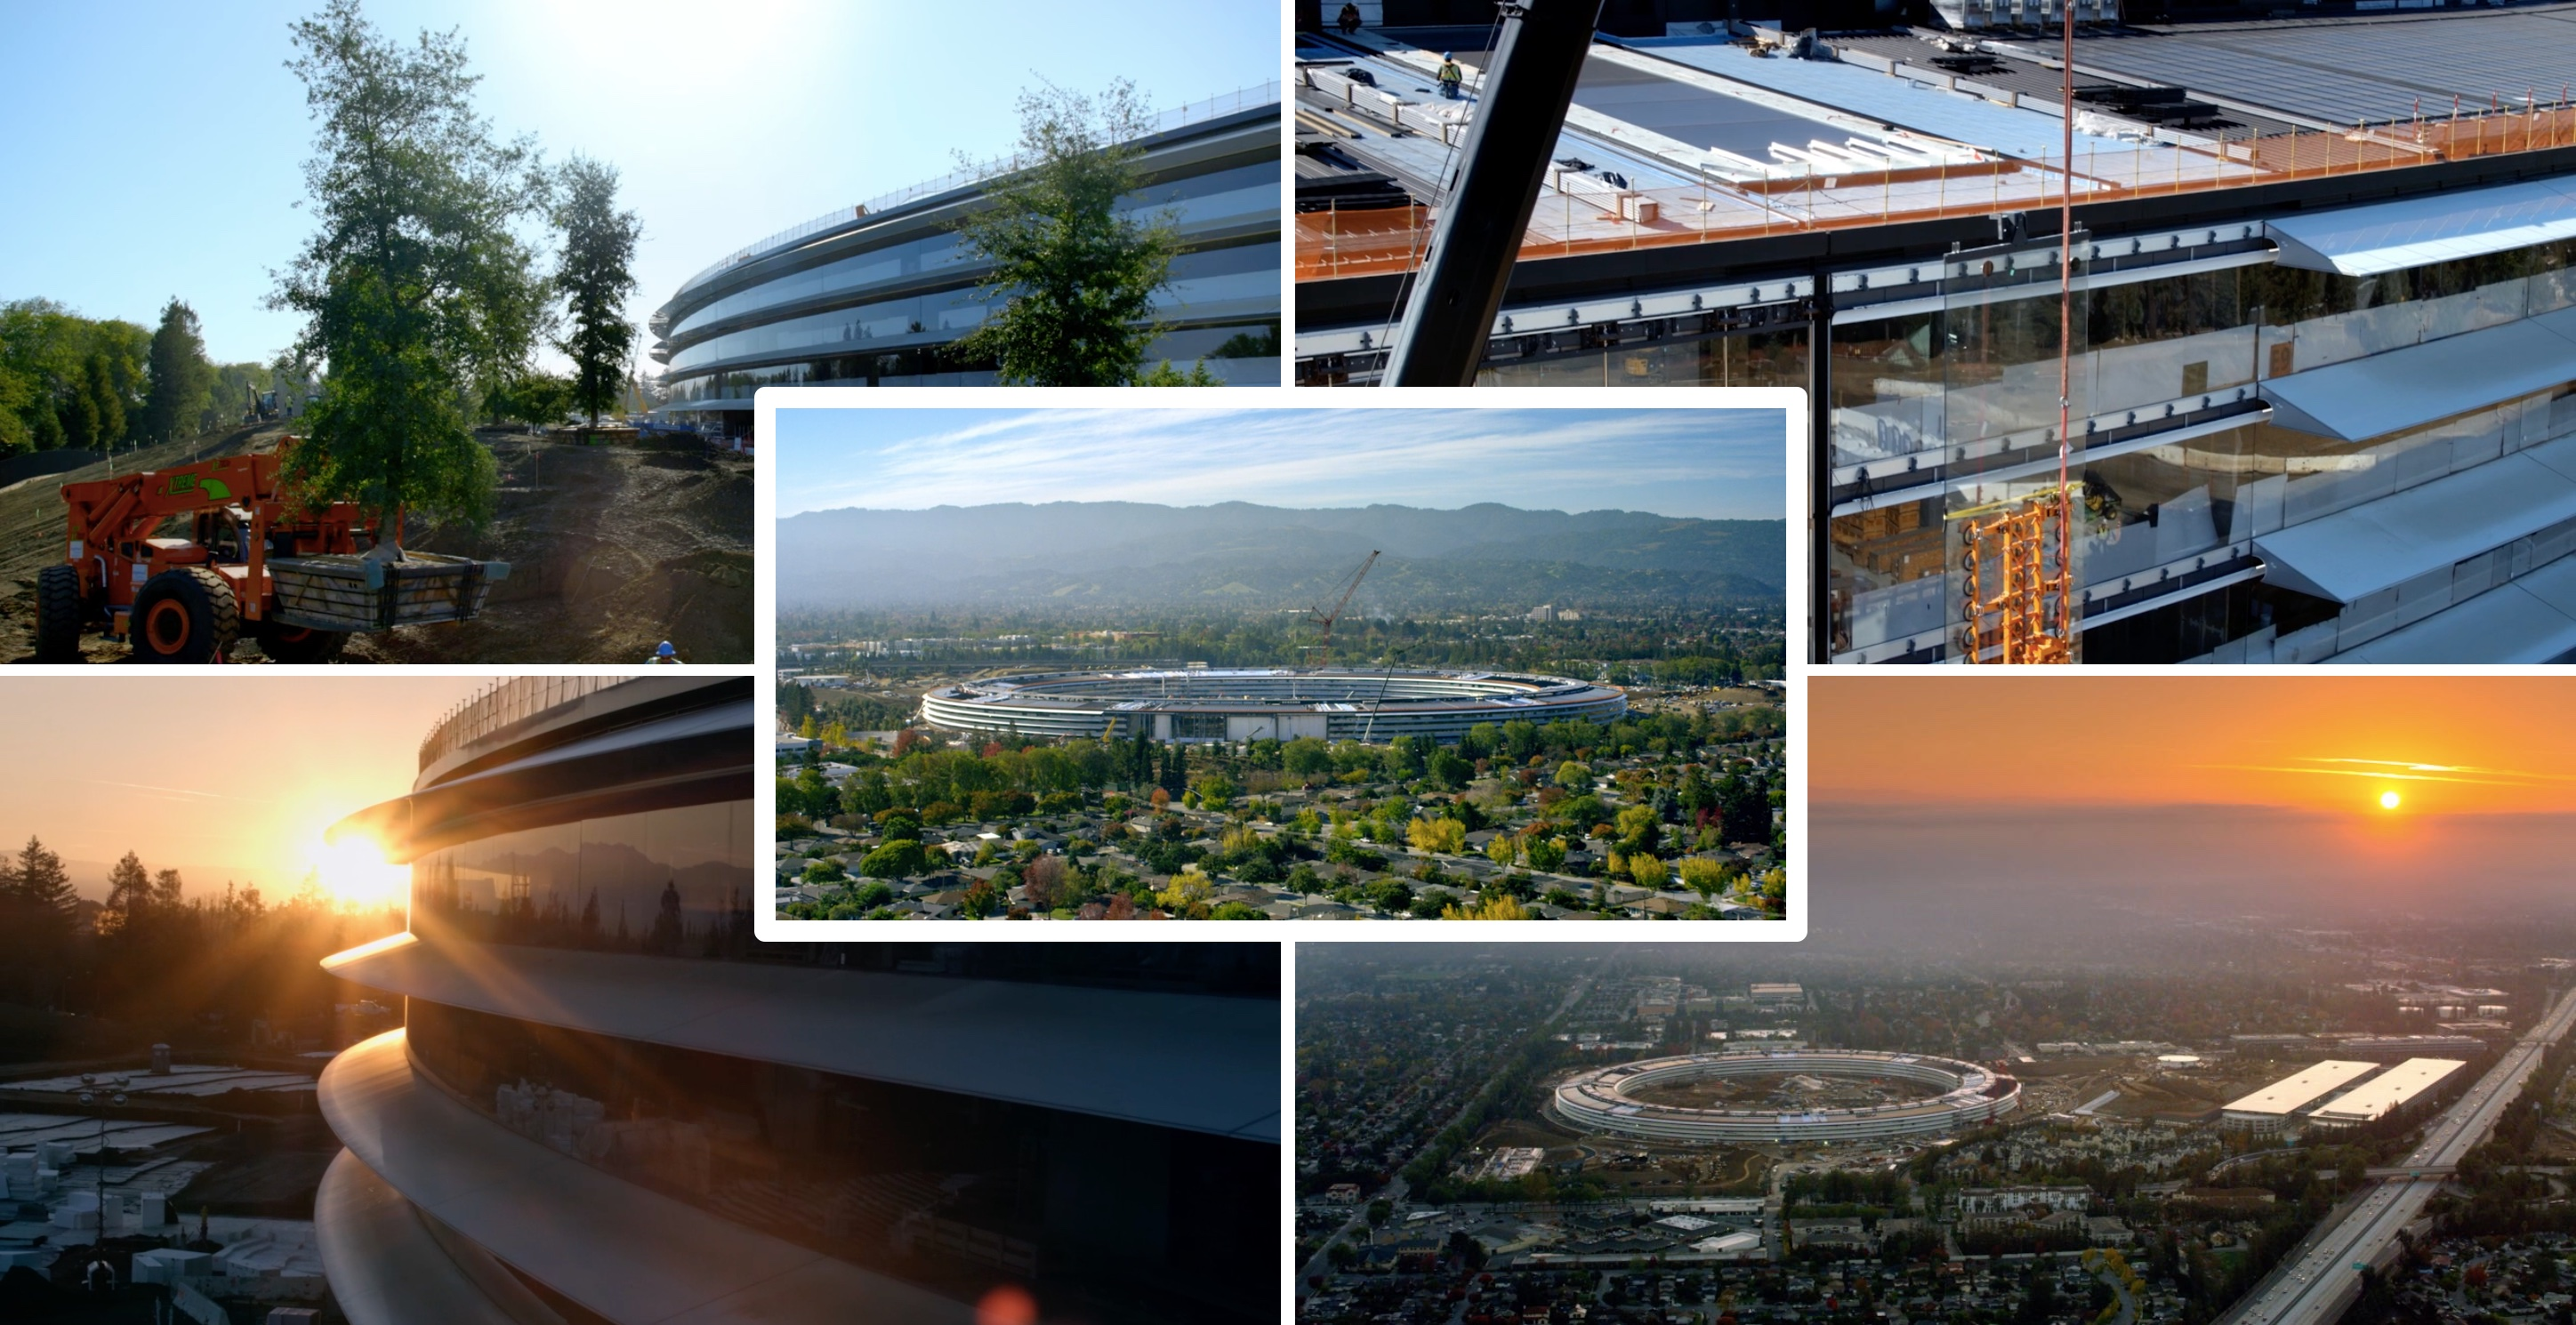 New Apple campus named Apple Park, opens to employees in April